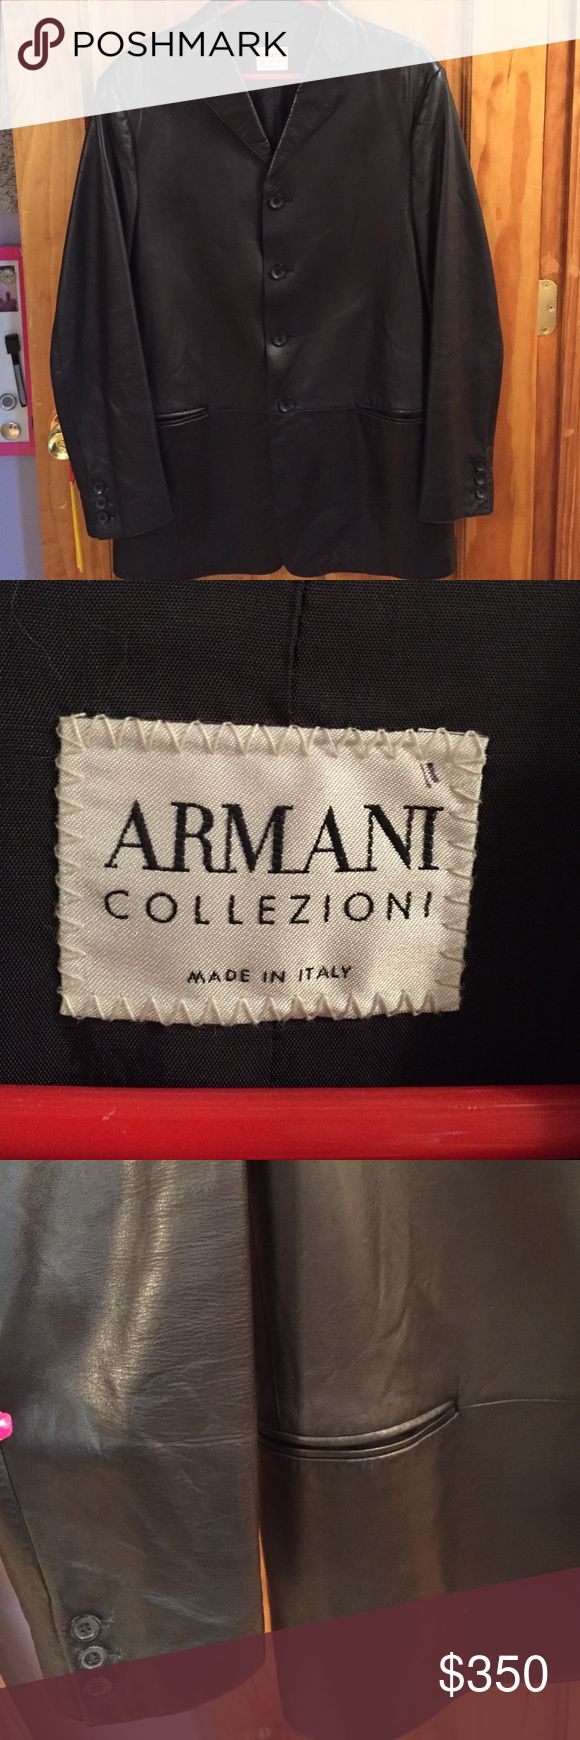 Men's Armani Black Button Leather Jacket Beautiful men's Armani leather jacket wit 4 buttons down the front and 3 buttons on each cuff. Armani Collezioni size 42 - made in Italy - RETAILS FOR $1600 !!!! Armani Exchange Jackets & Coats